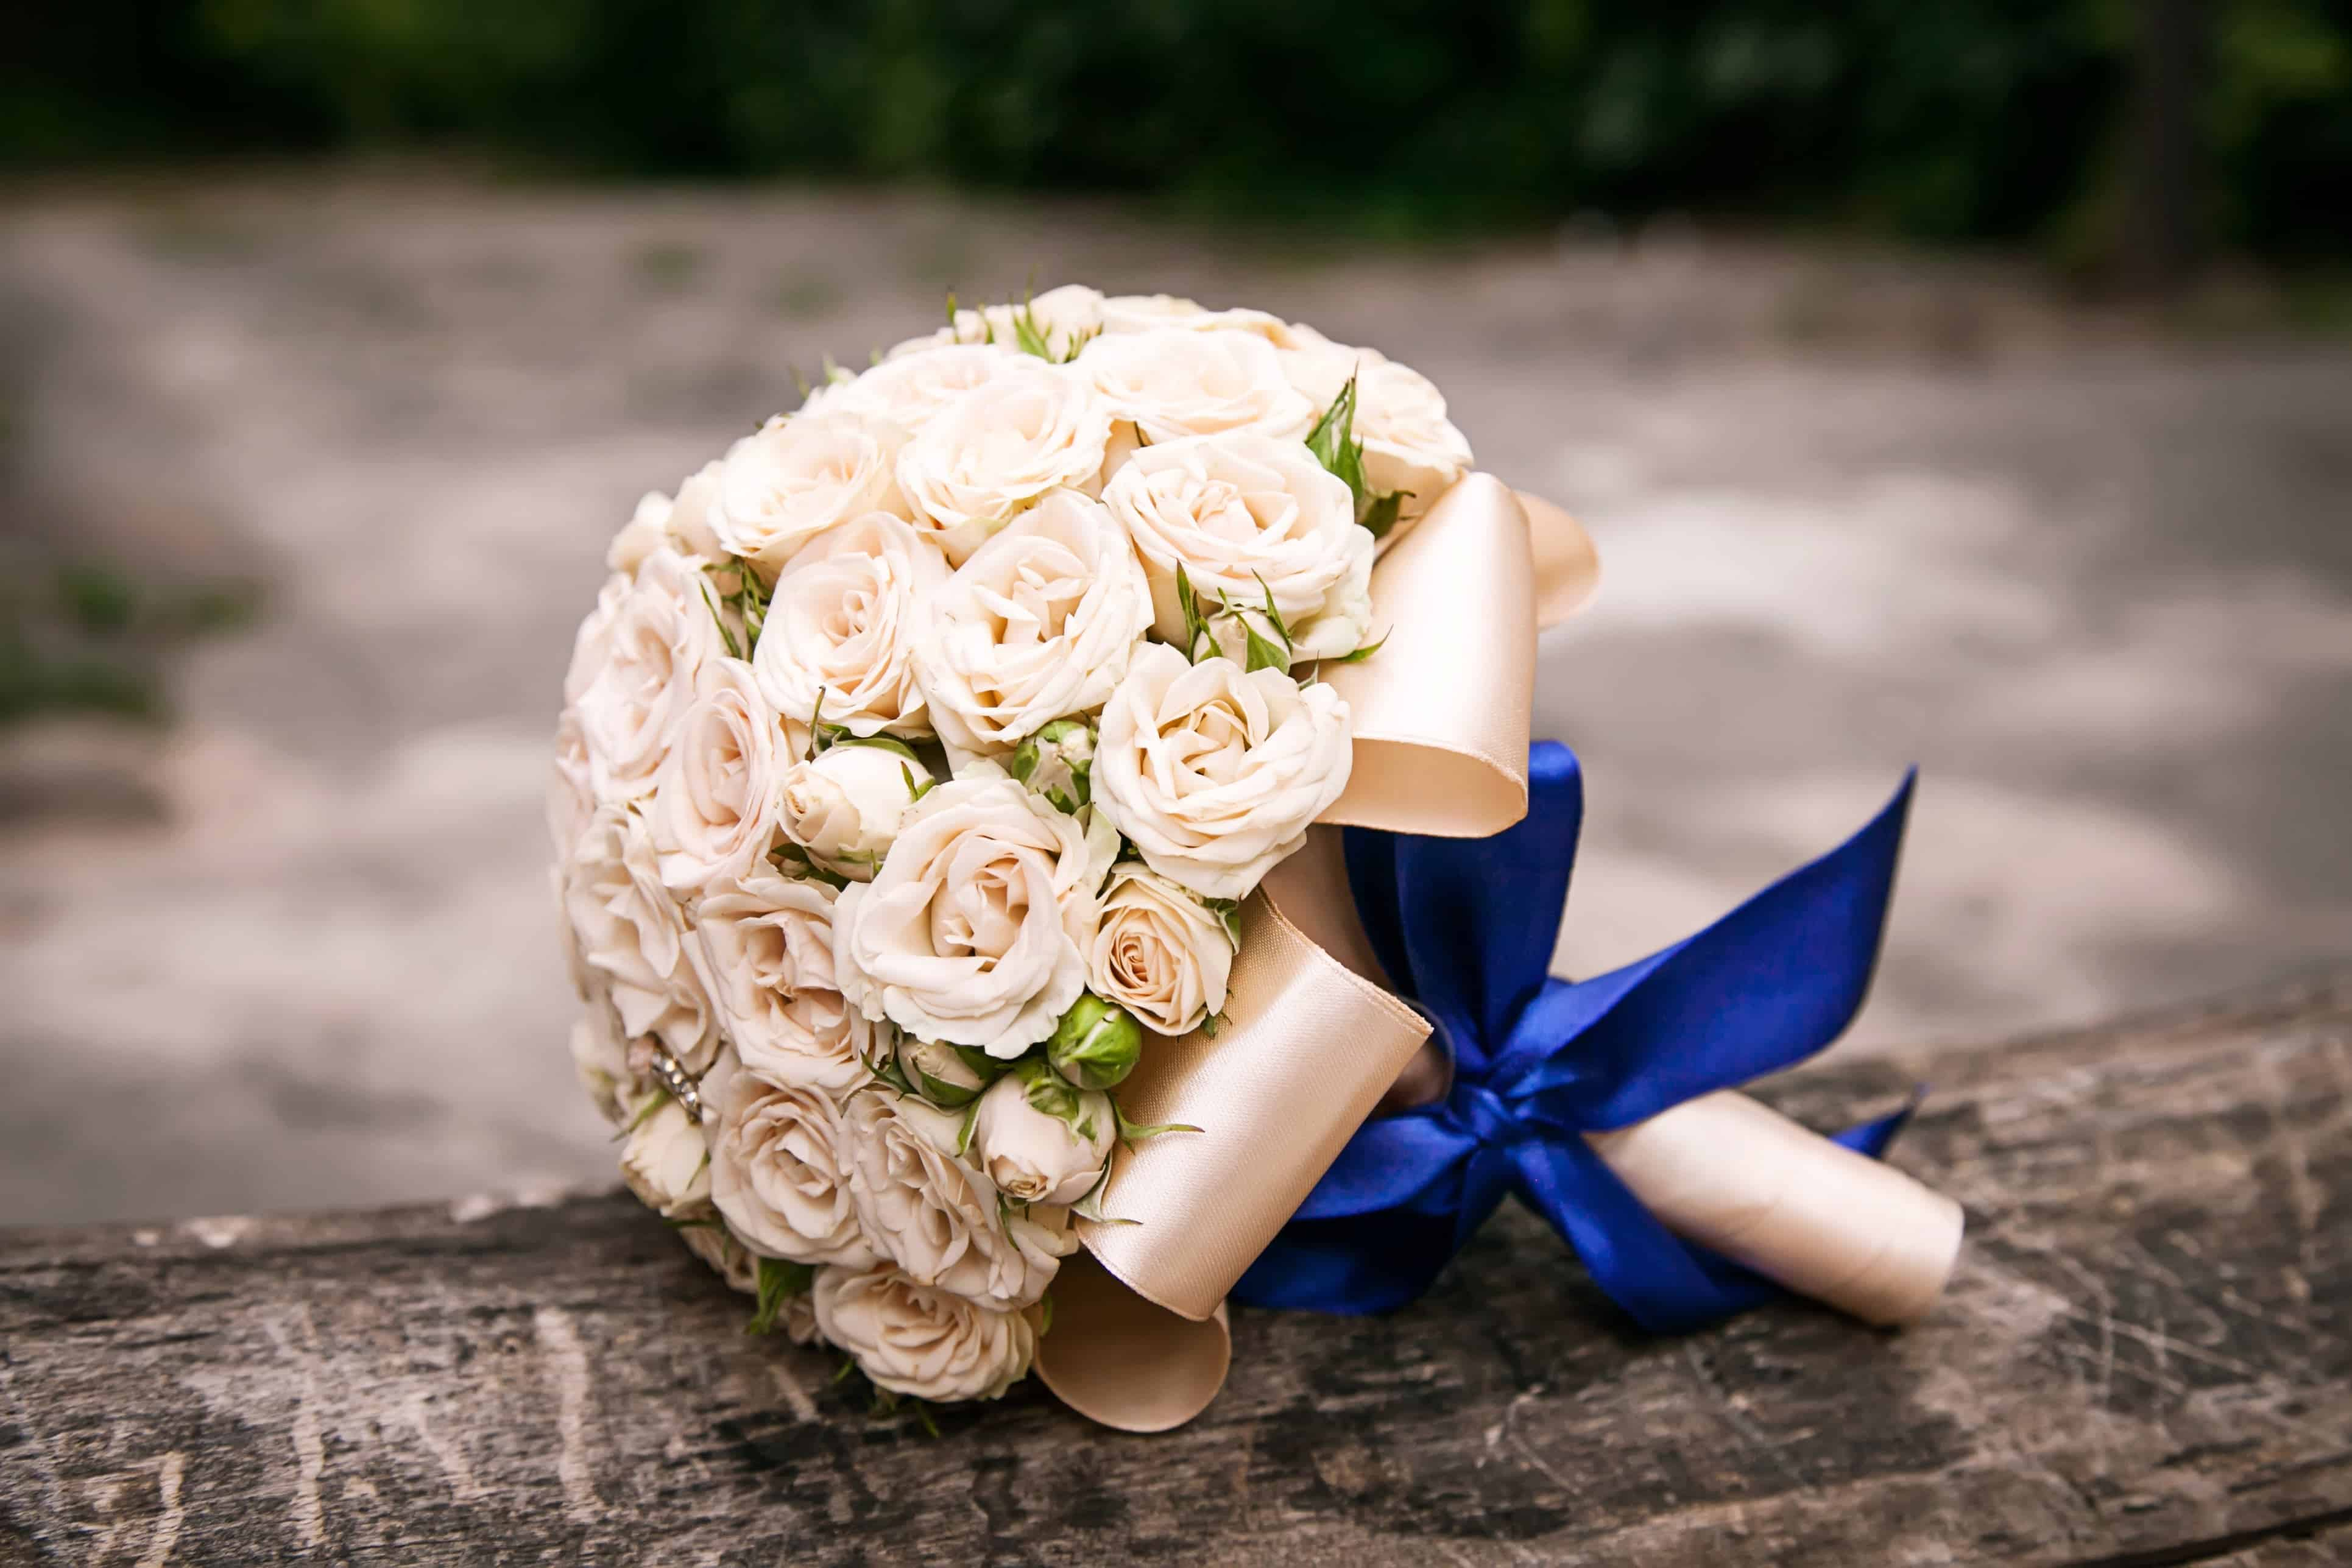 Round bouquet tied with ribbon